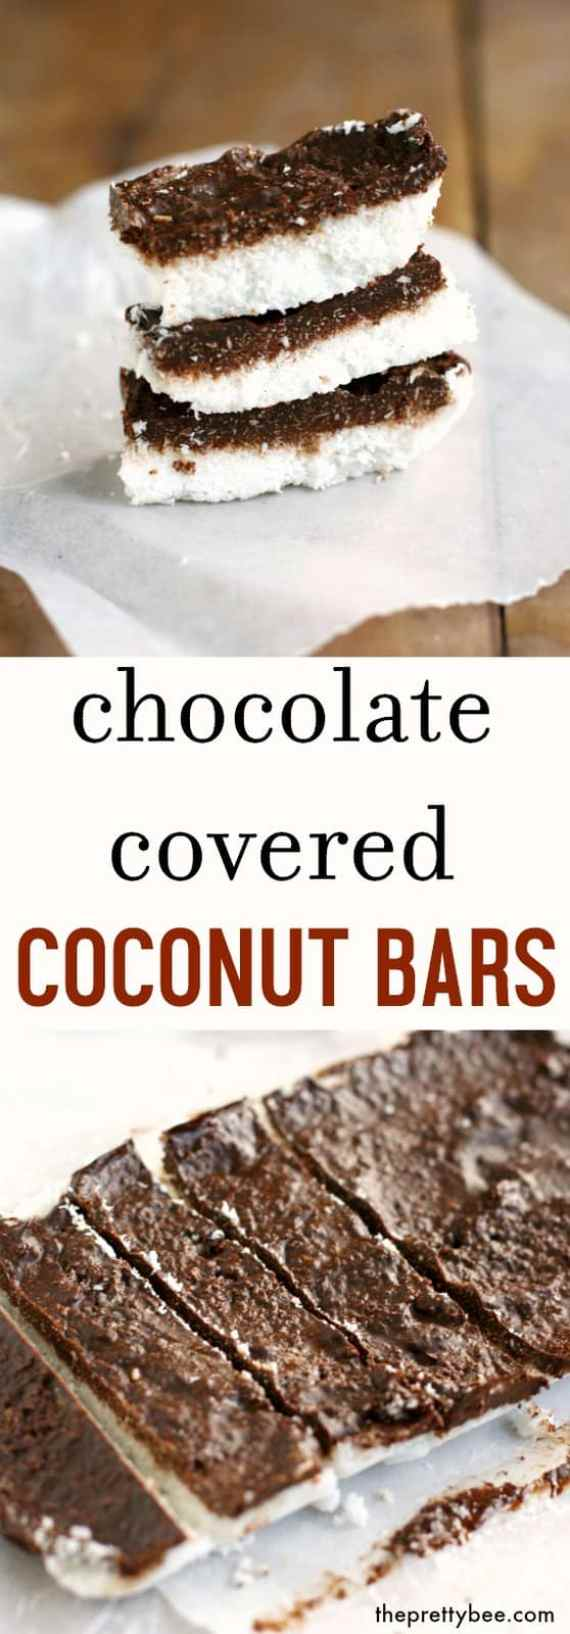 An easy, allergy friendly recipe - chocolate covered coconut bars are delicious and vegan and gluten free!